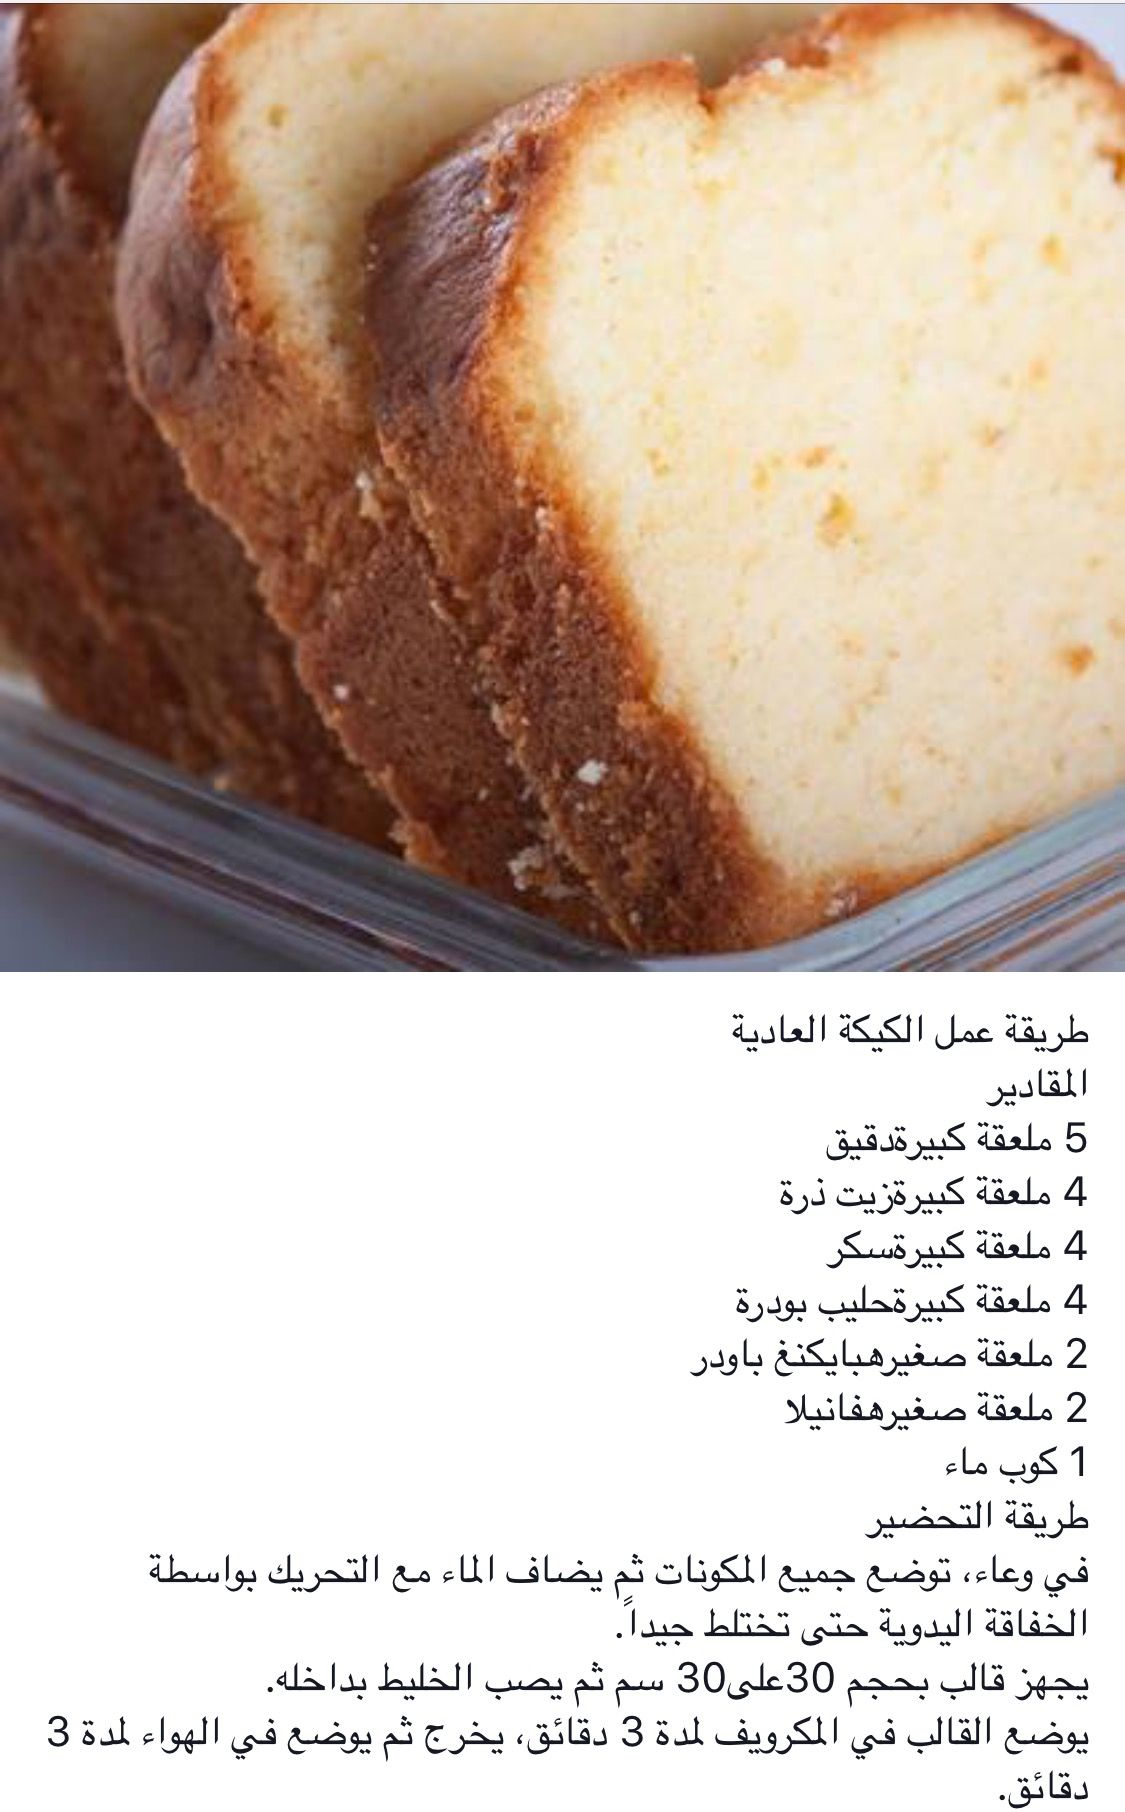 كيك بدون بيض في الميكرويف Yummy Food Dessert Party Food Dessert Middle Eastern Food Desserts